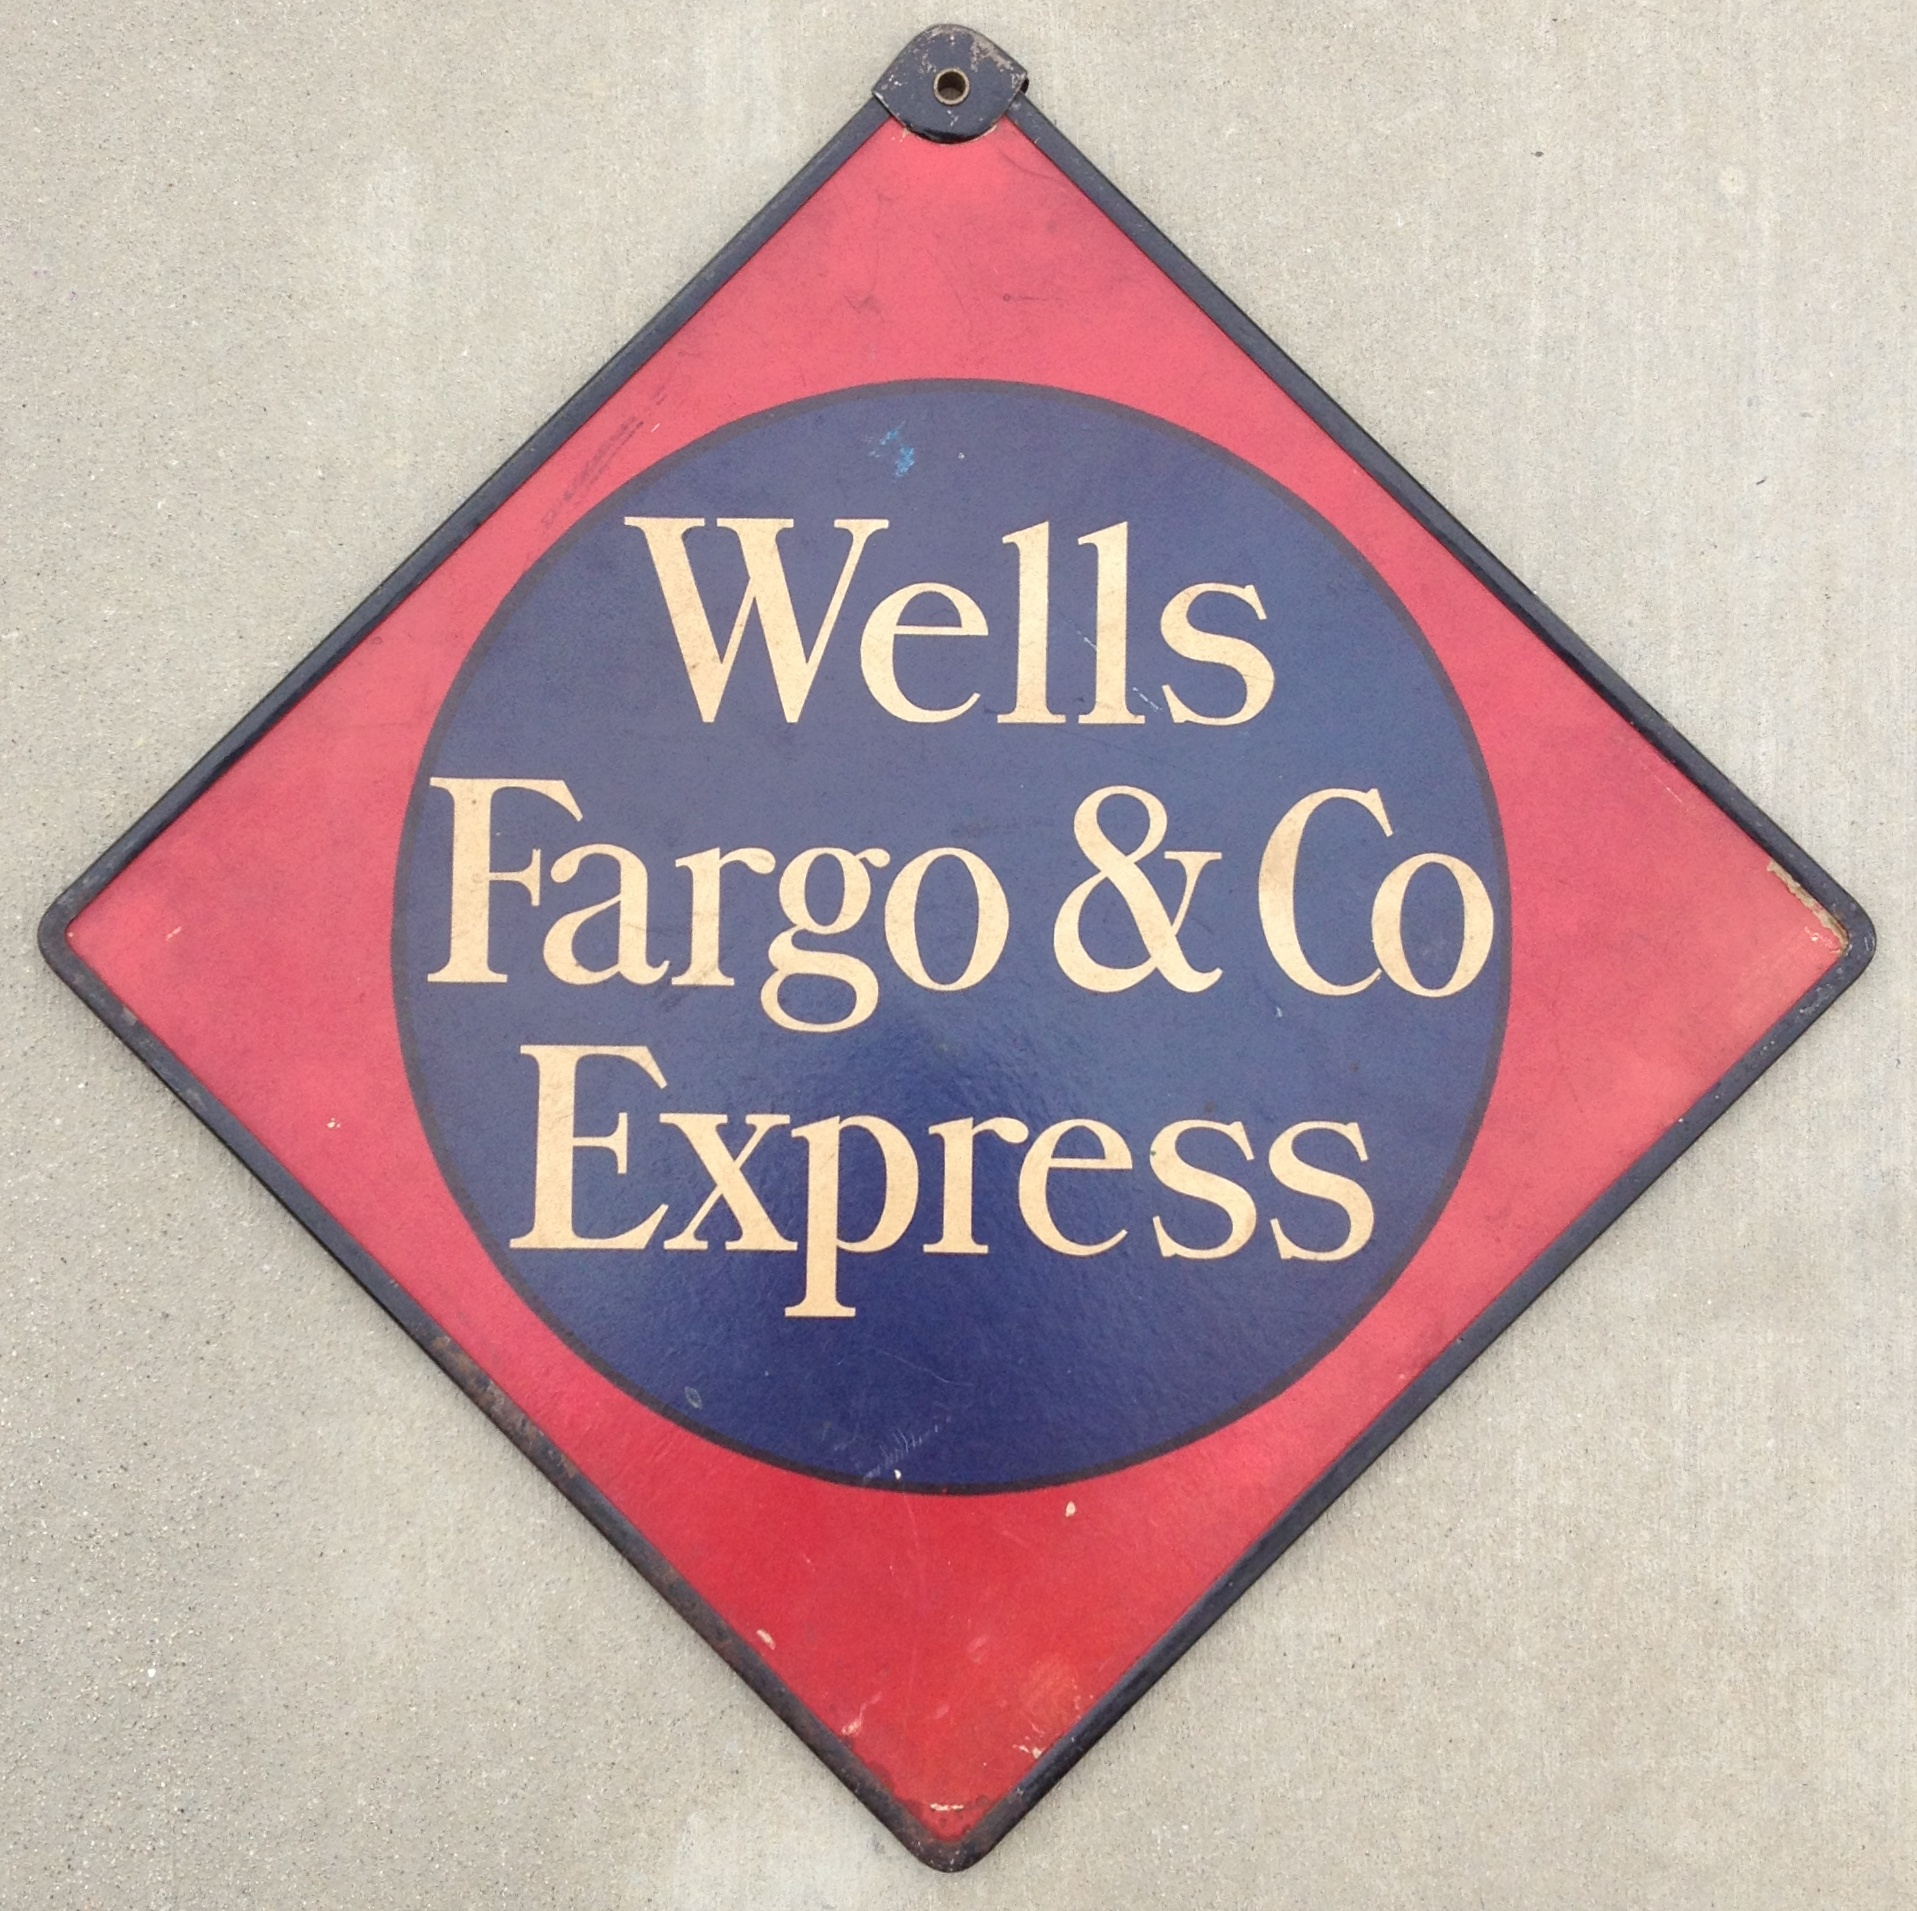 Wells Fargo & Co Express 1913 Call Card